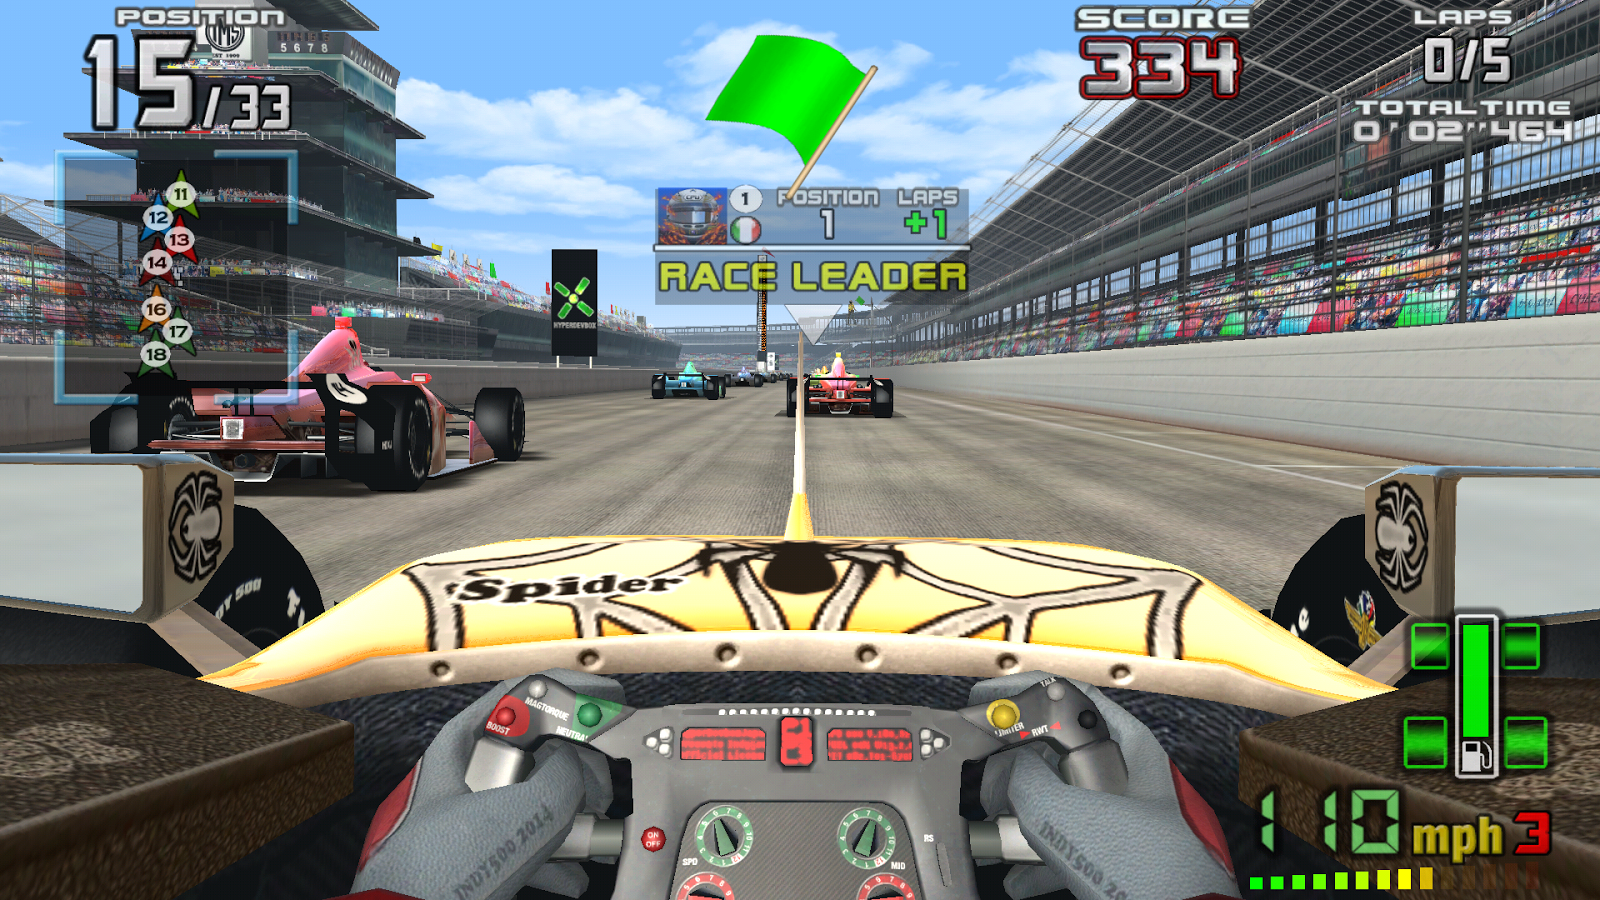 Phone Racing Games For Android Phones indie car racing games for android ladies and gentlemen start indy 500